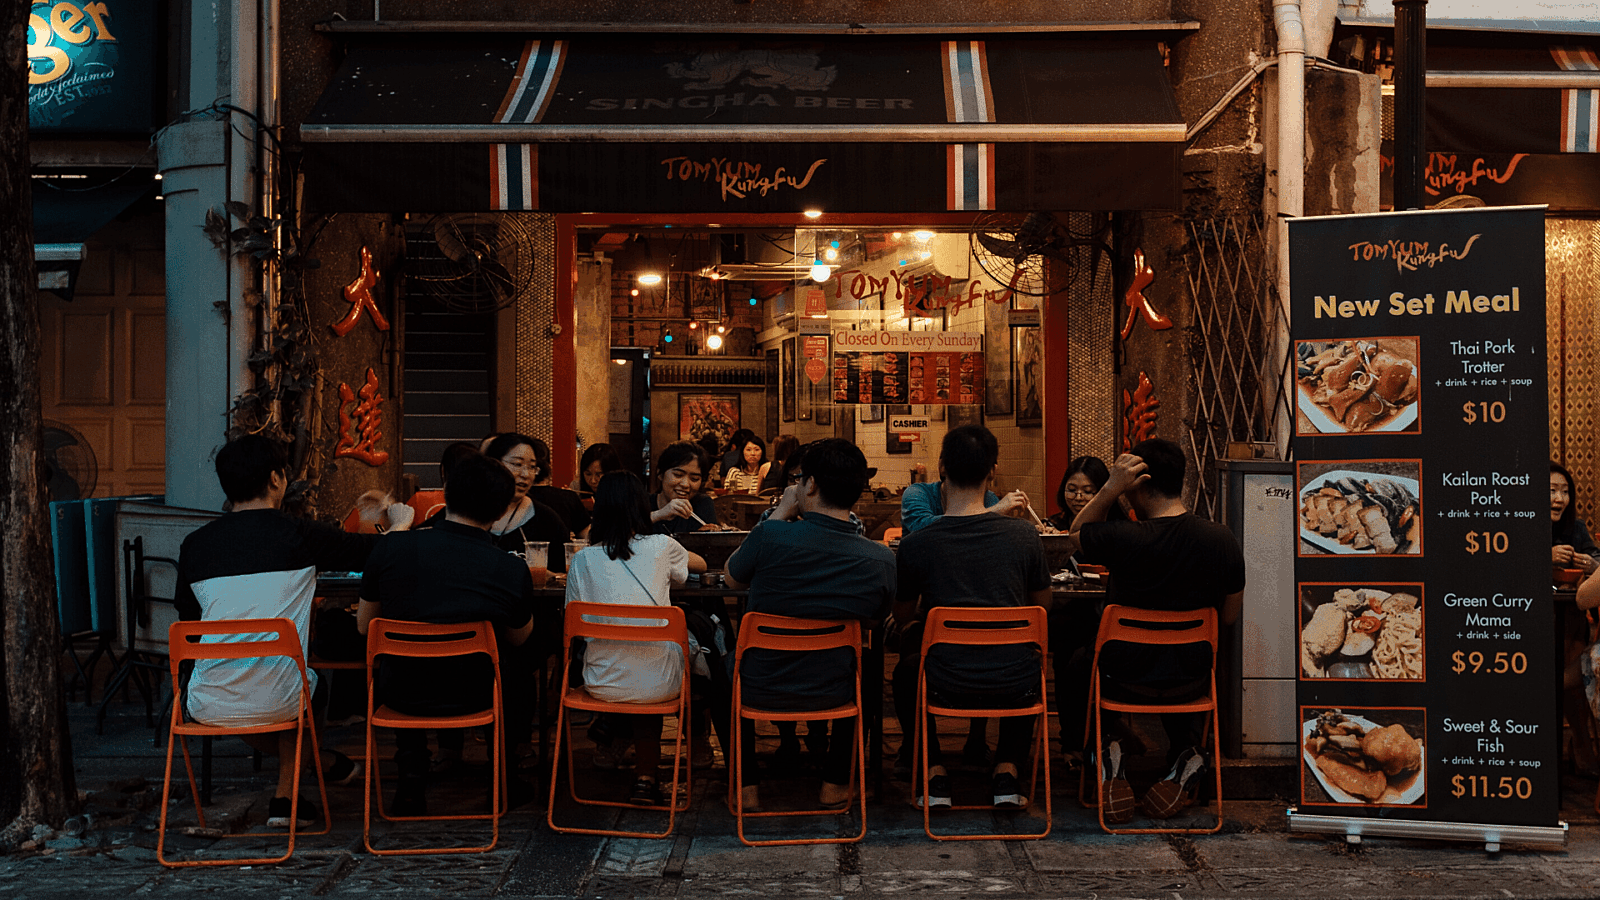 Restaurant budget diners on patio